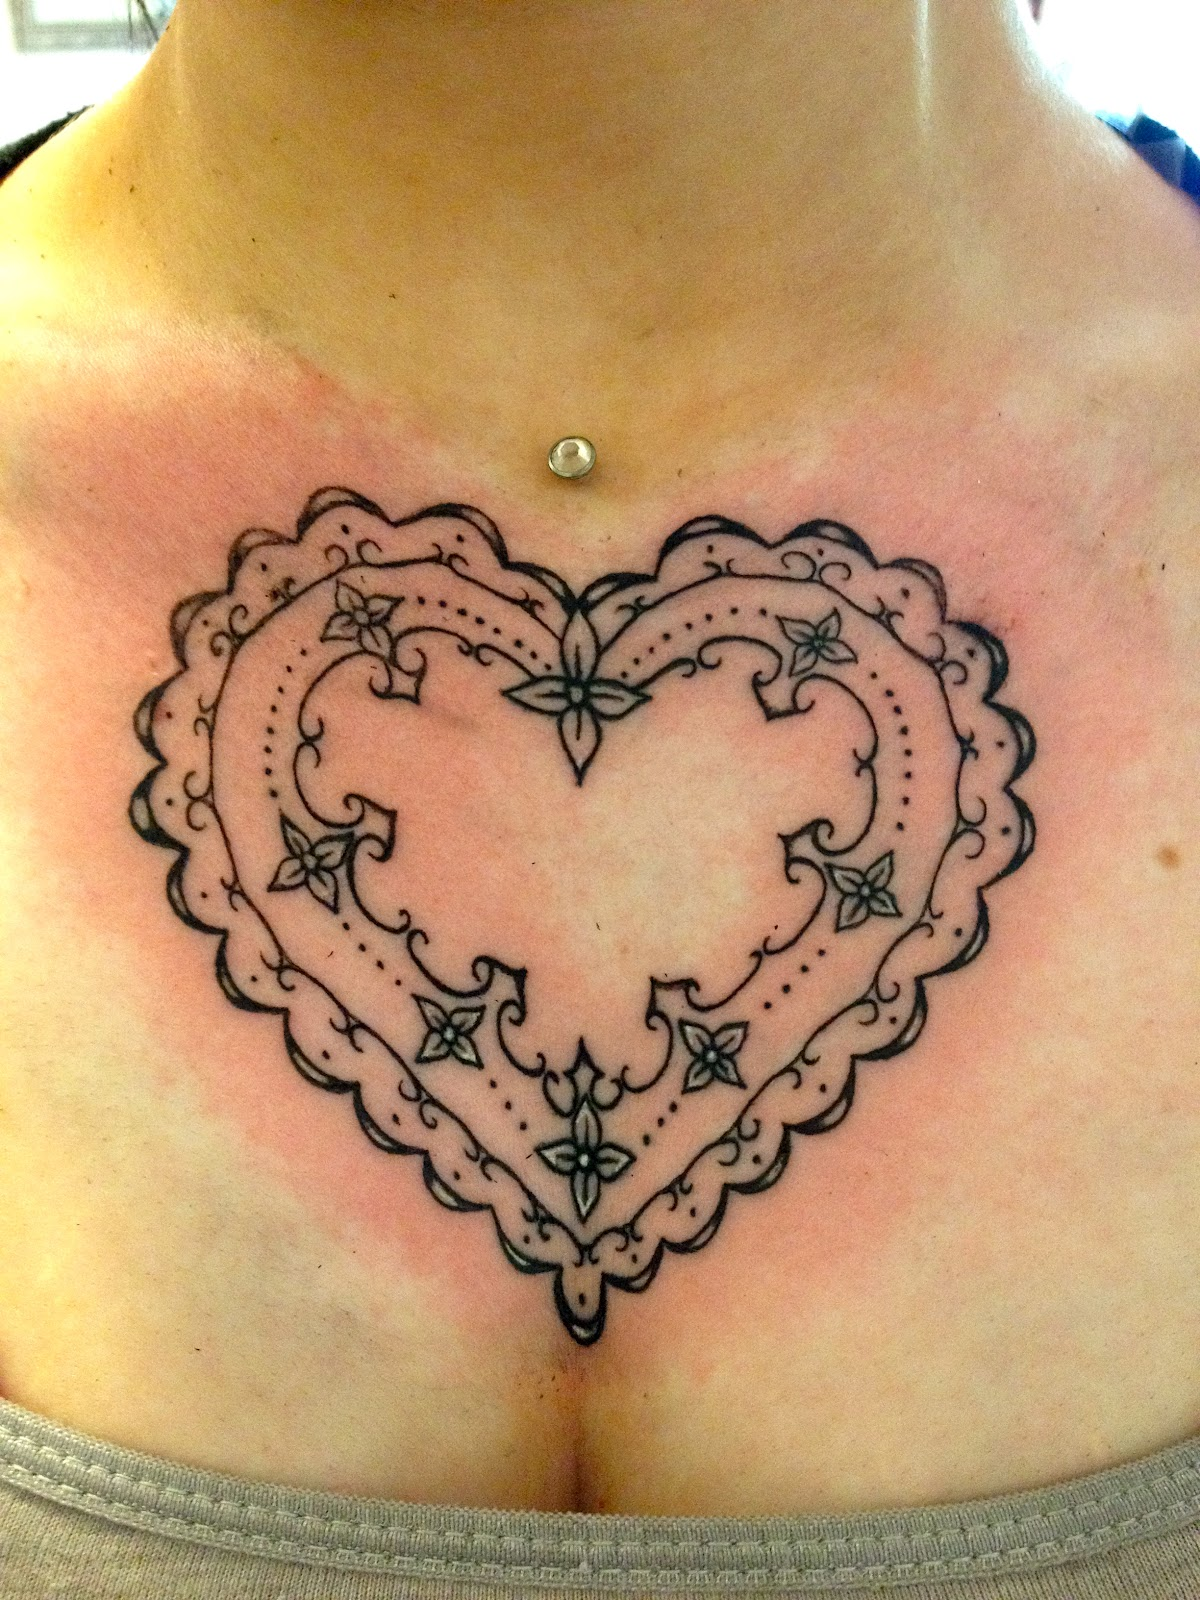 50 awesome heart tattoo designs ideas the xerxes. Black Bedroom Furniture Sets. Home Design Ideas